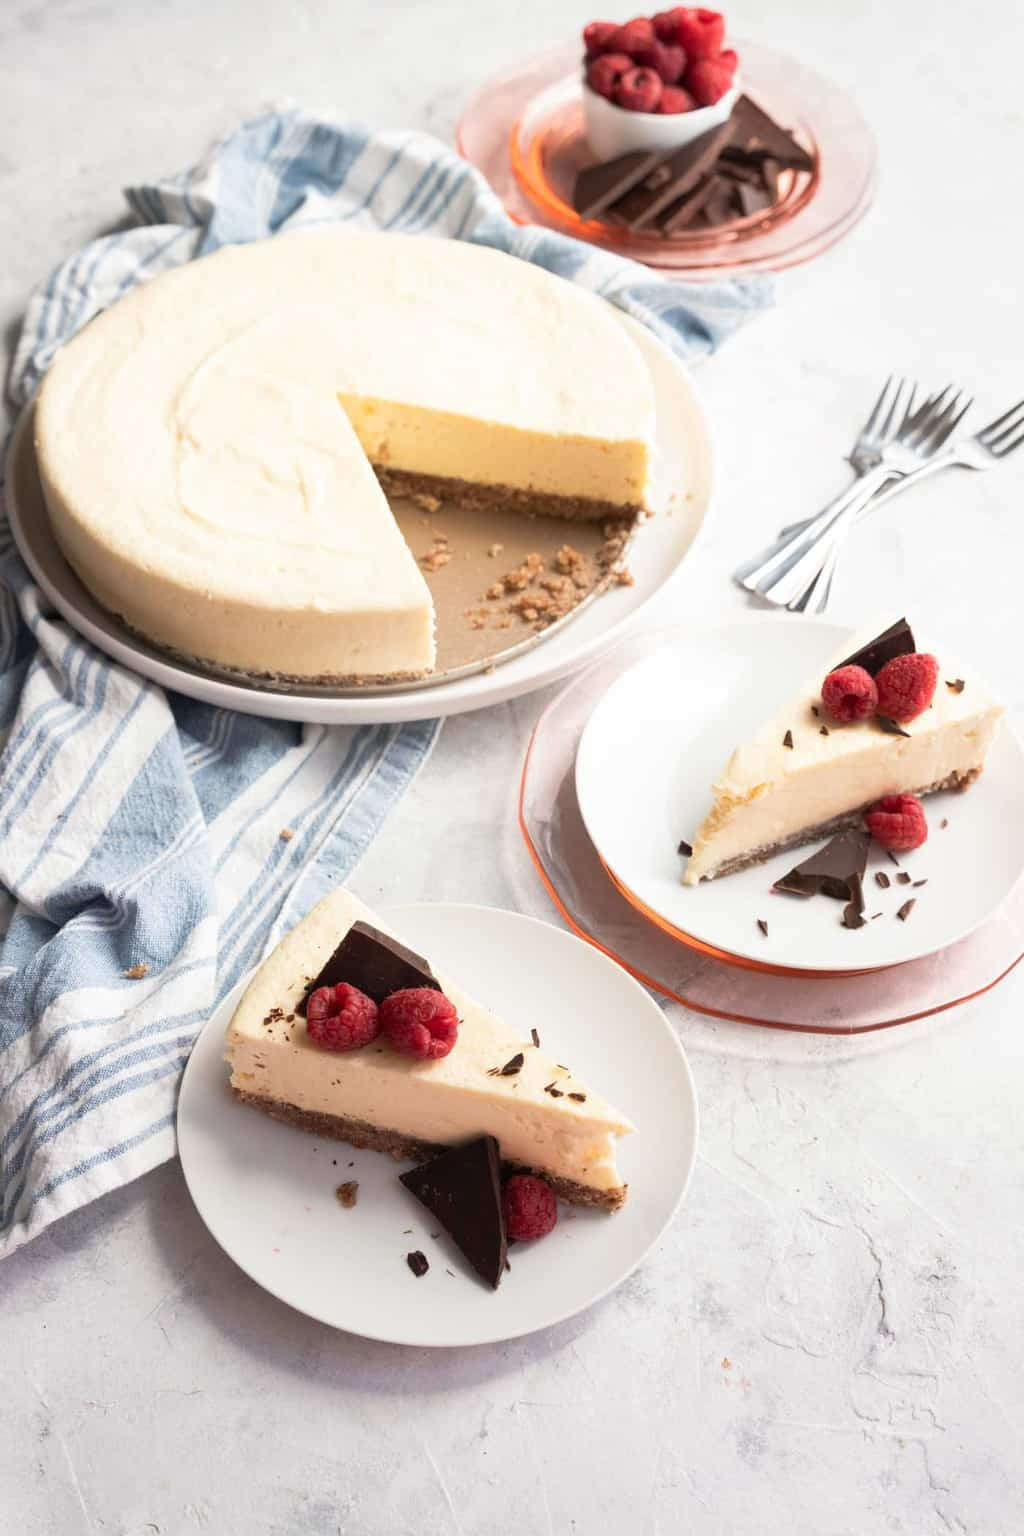 photo of an easy keto cheesecake recipe by top Houston lifestyle blogger Ashley Rose of Sugar & Cloth